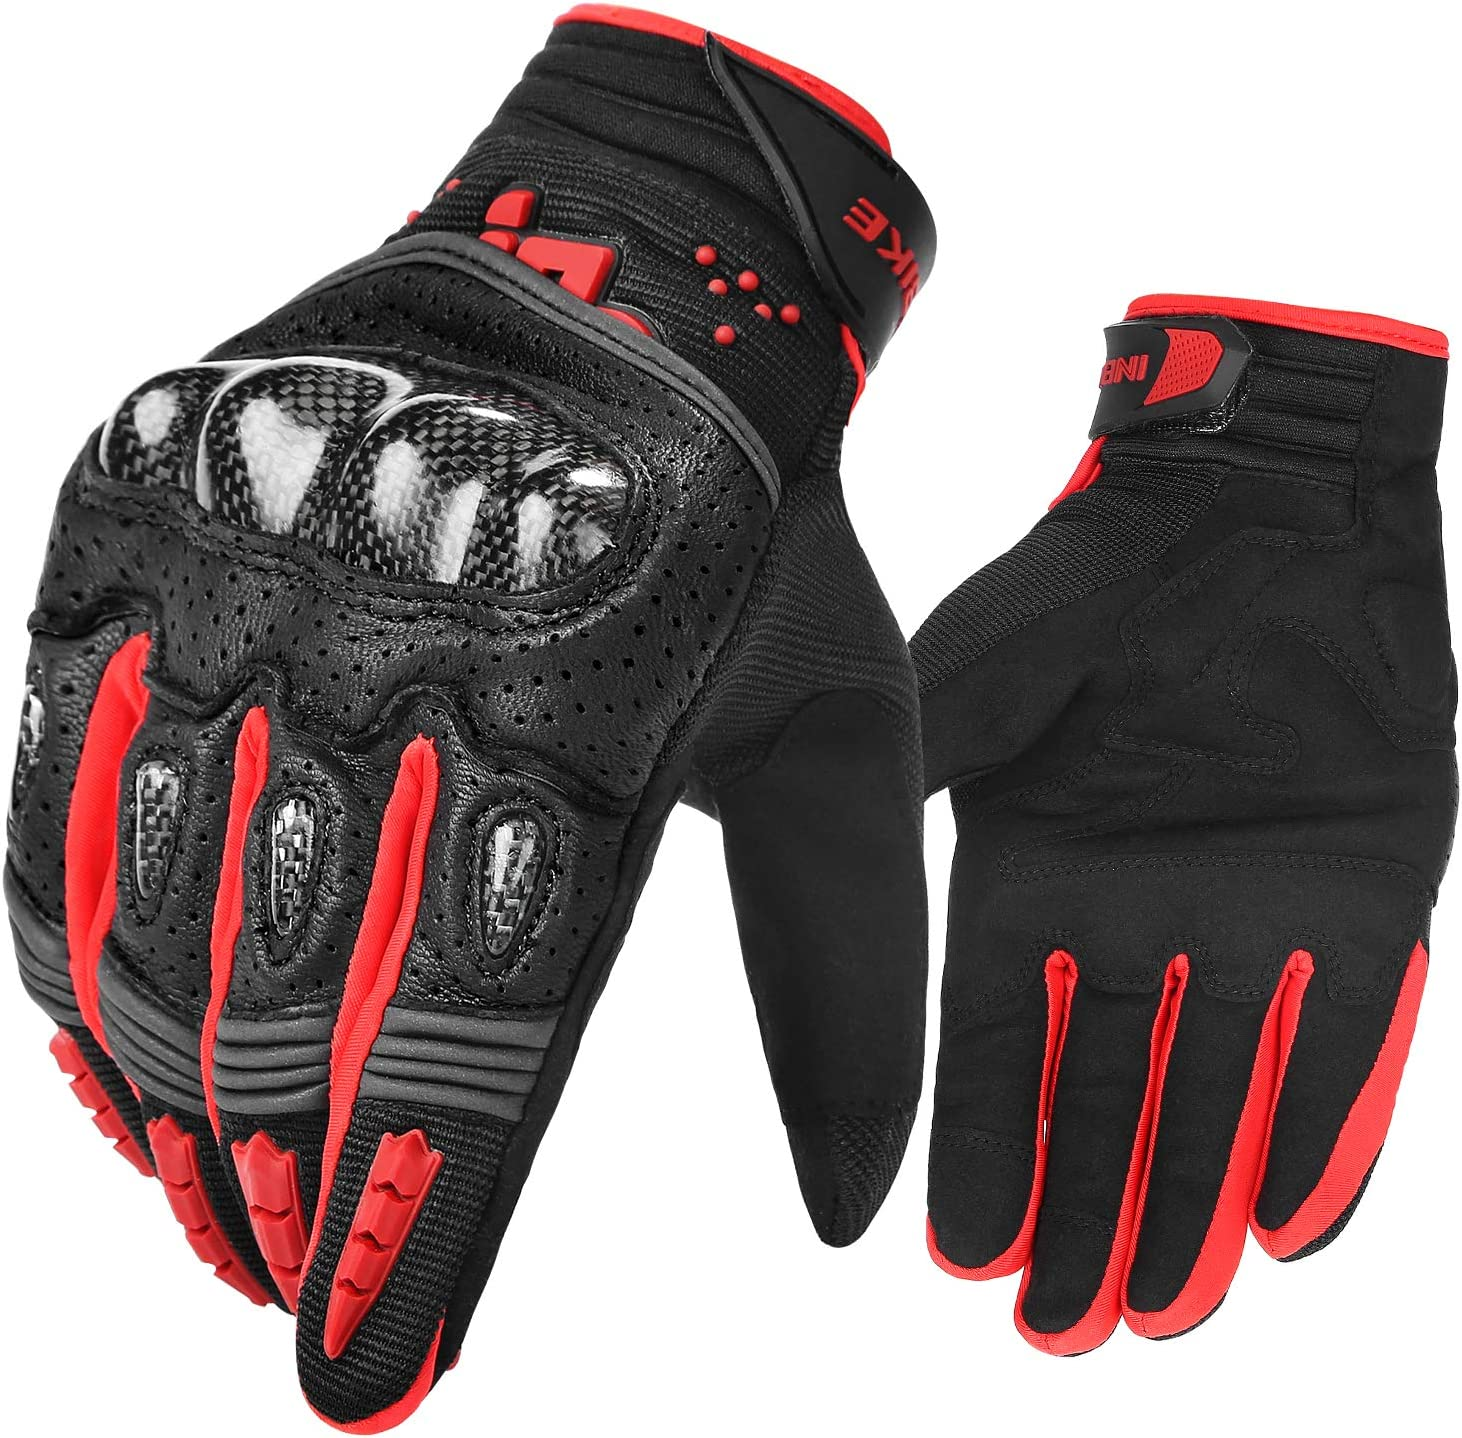 INBIKE Motorbike Gloves Leather Protection All Season Motorcycle Racing Glove IM803